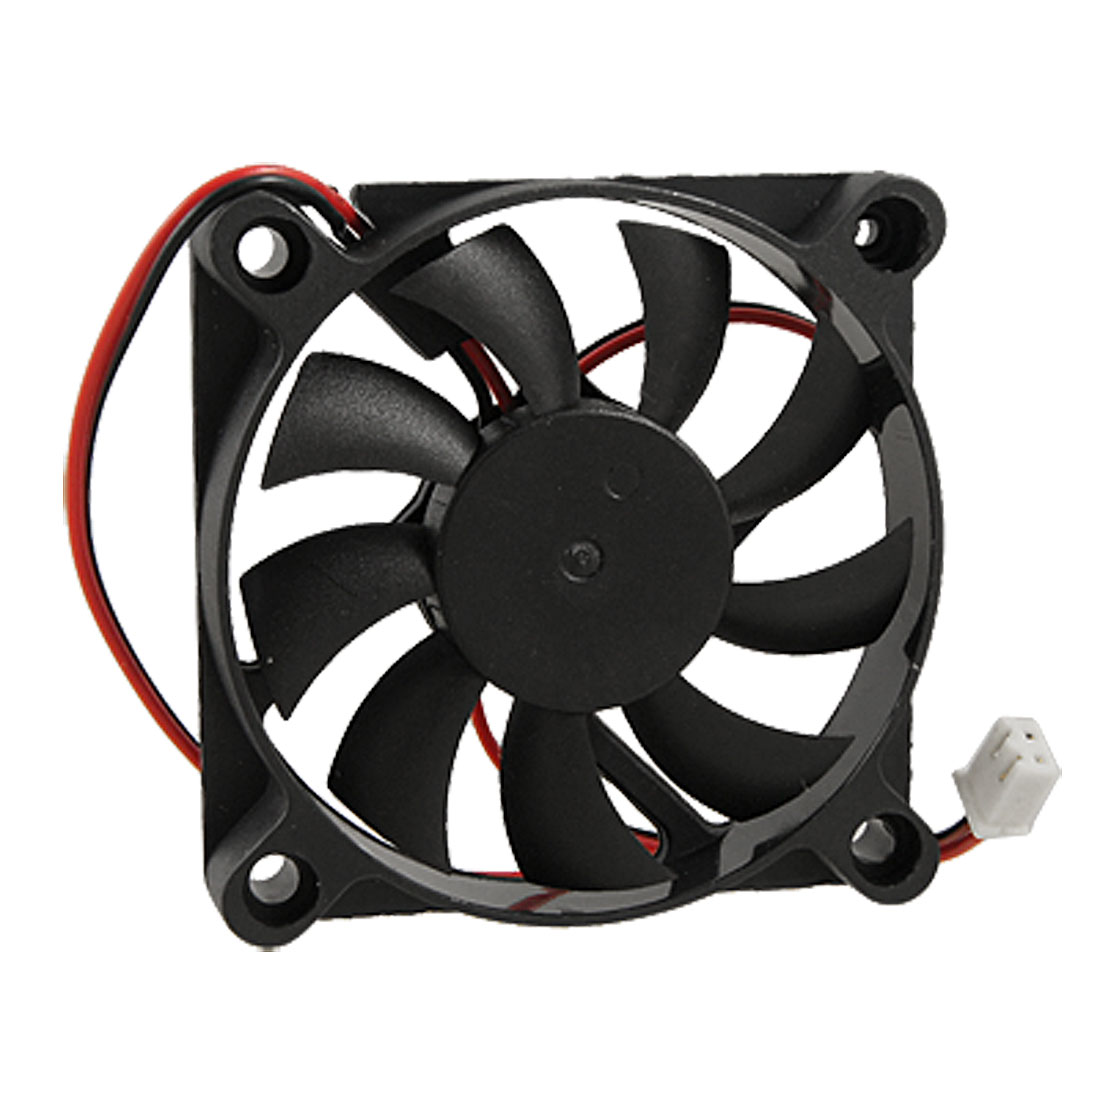 YOC Hot Desktop PC Case DC 12V 0.16A 60mm 2 Pin Cooler Cooling Fan free shipping wholesale delta 12v 0 18a afb0612hhb axial case cooler cooling fan 6015 60x60x15mm 6cm 60mm